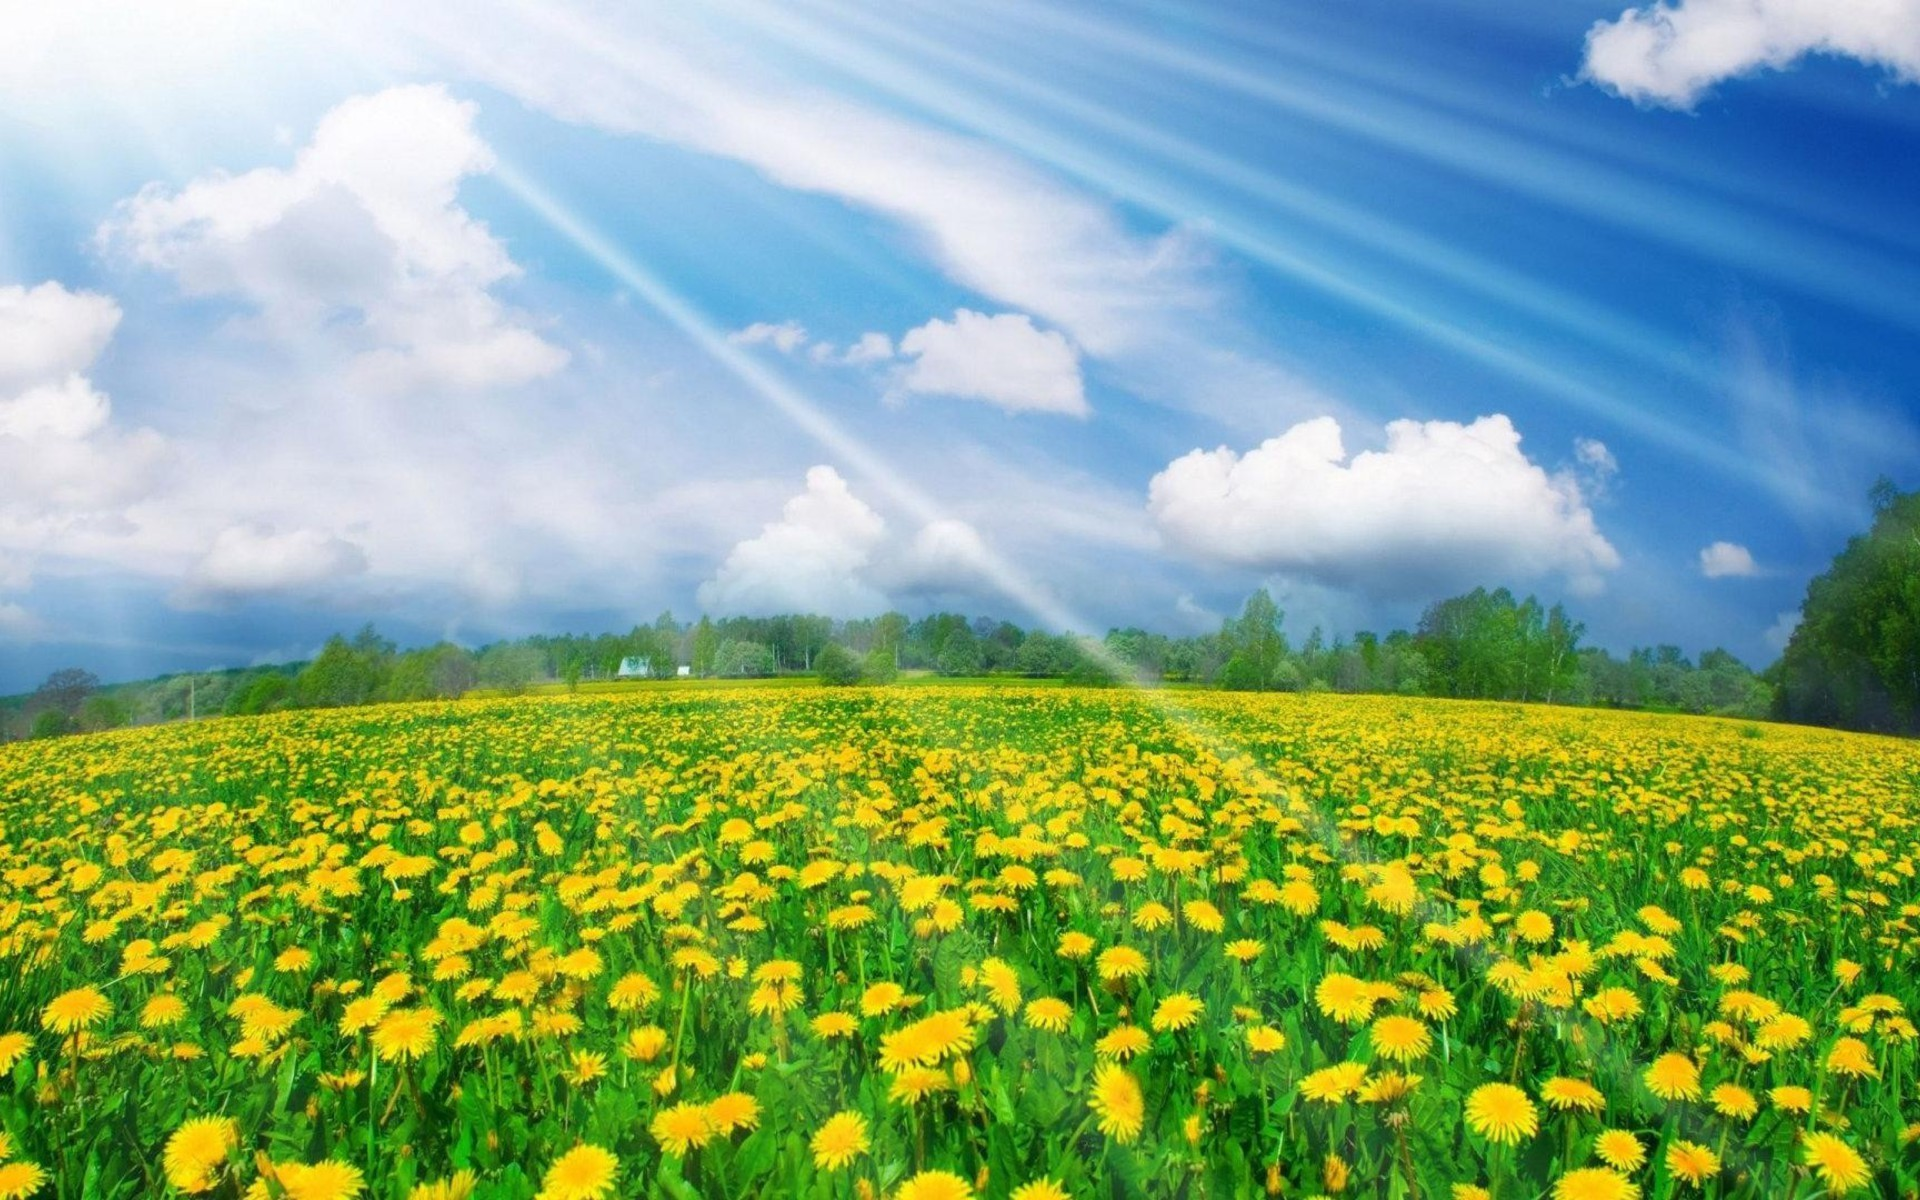 Spring Nature Images Wallpaper 63 Images